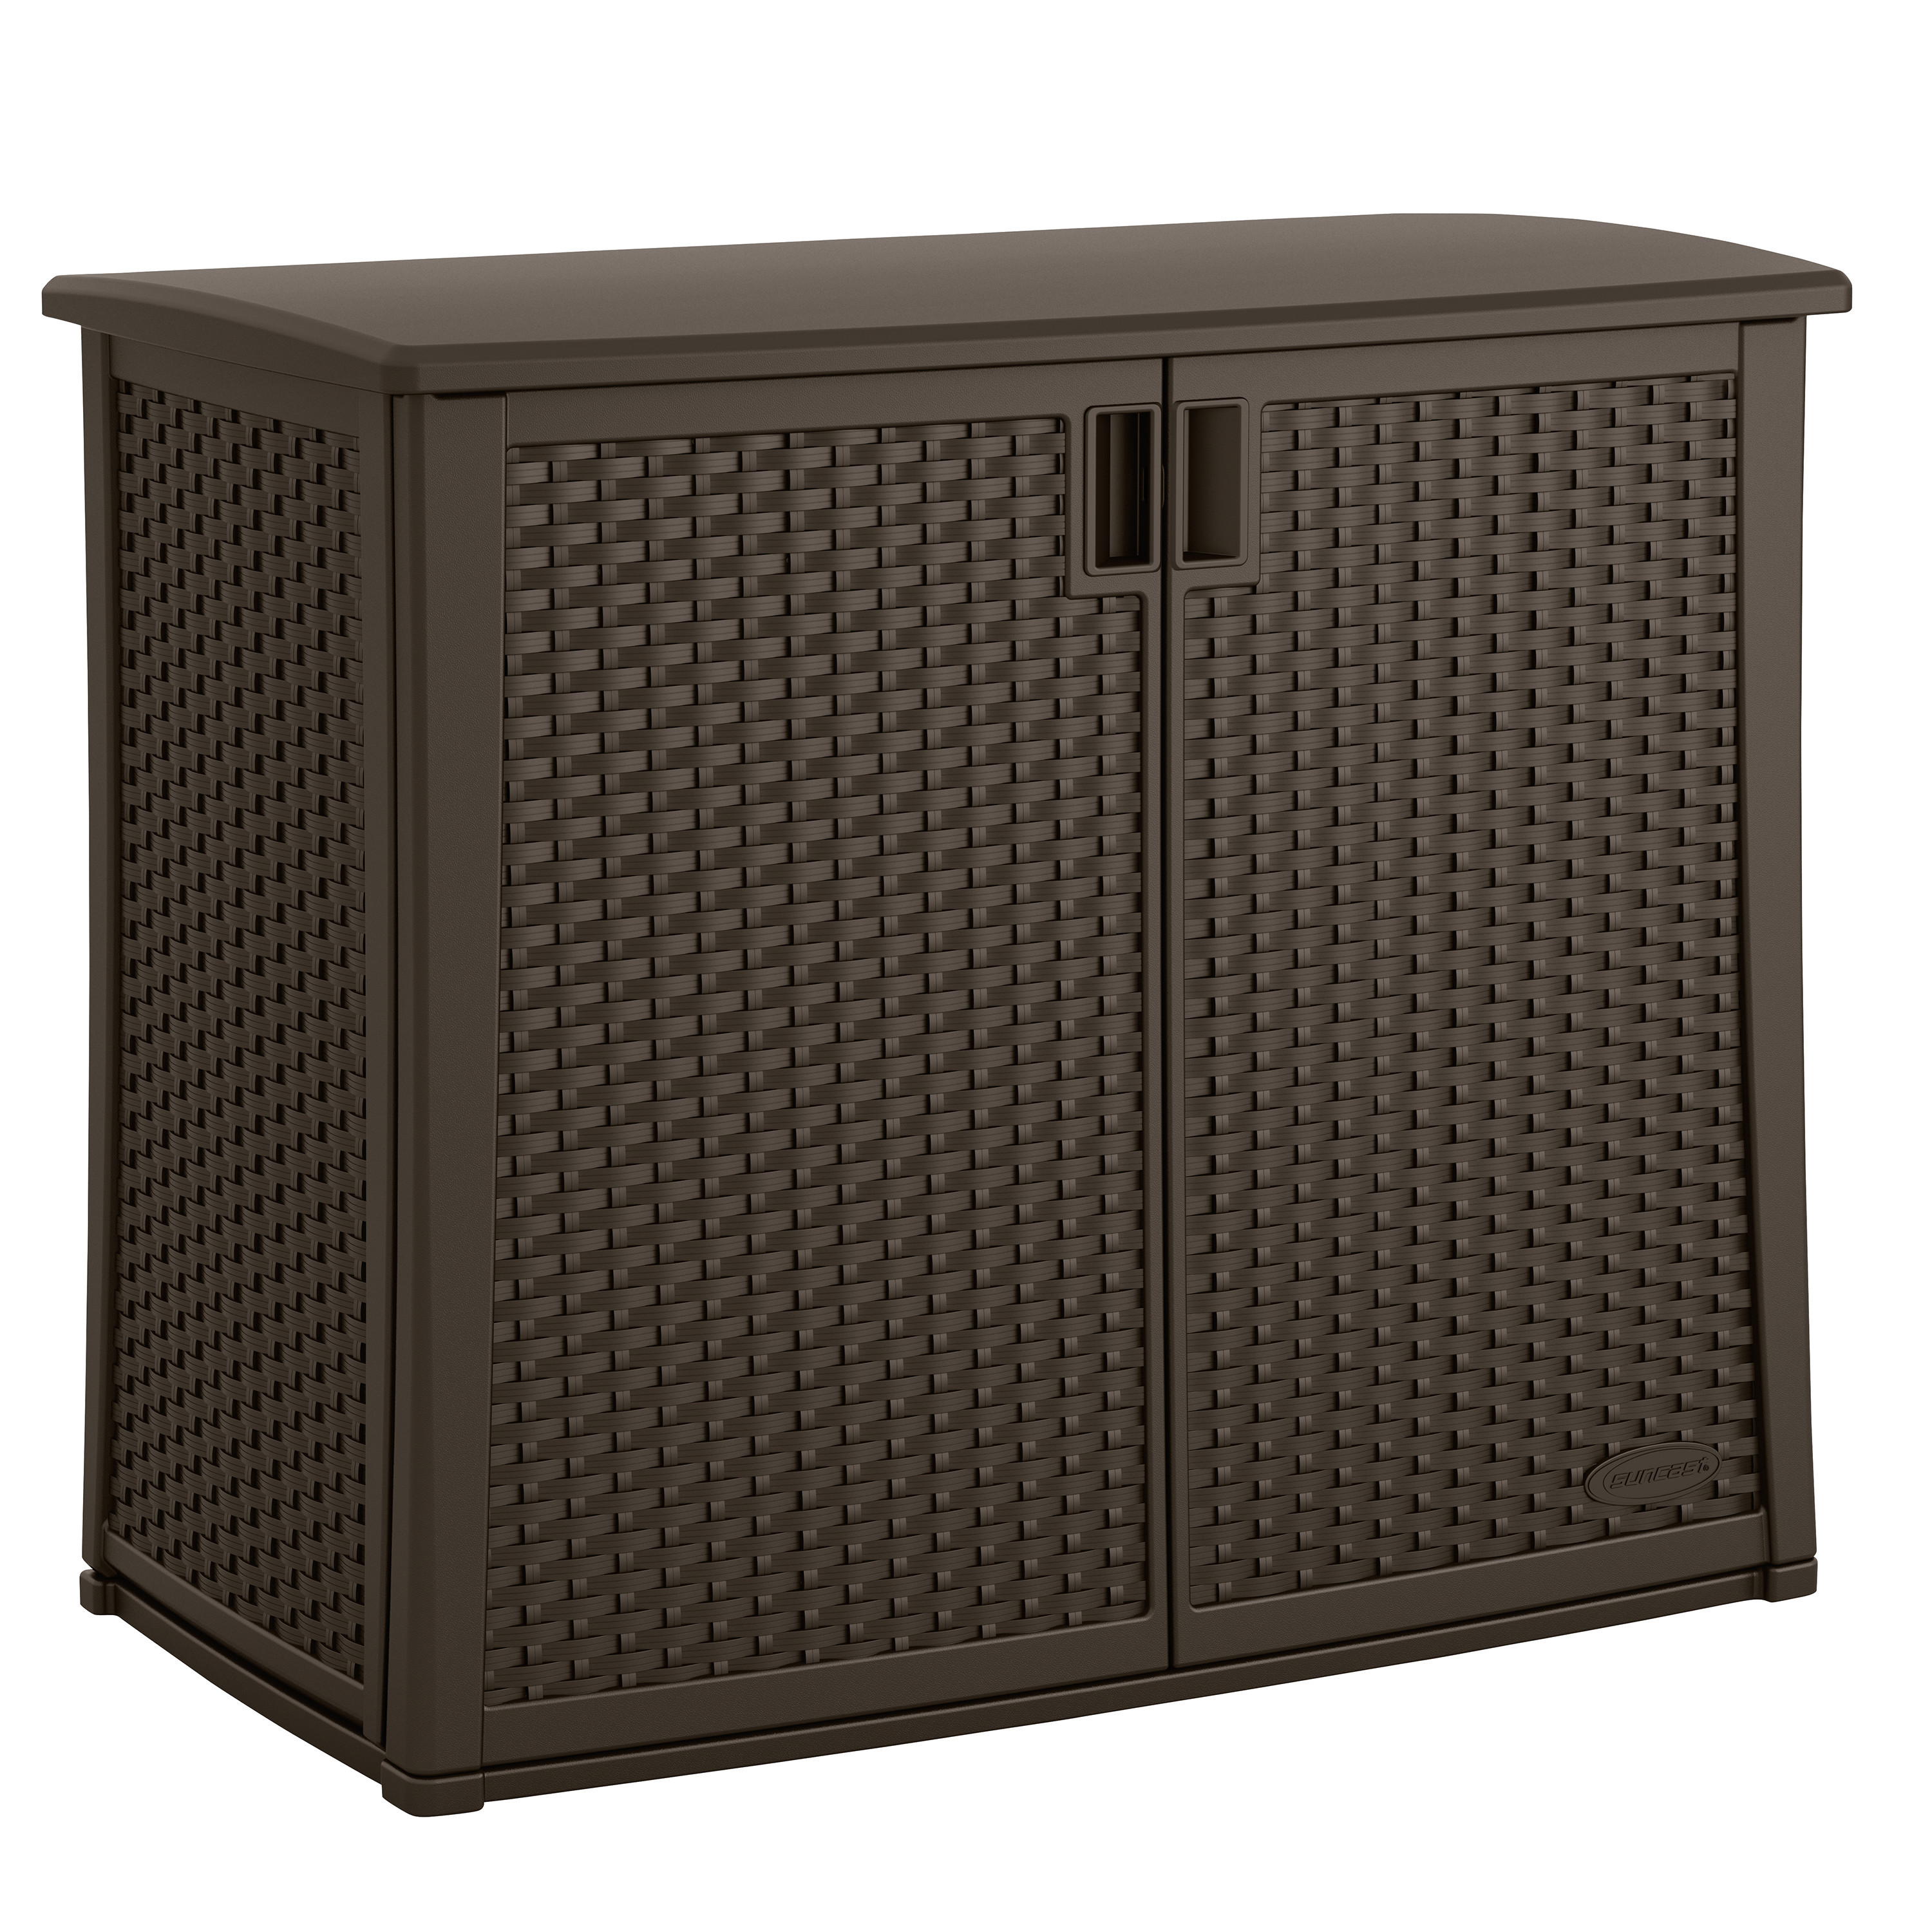 Best ideas about Resin Storage Cabinet . Save or Pin Suncast 97 Gallon Resin Storage Cabinet & Reviews Now.